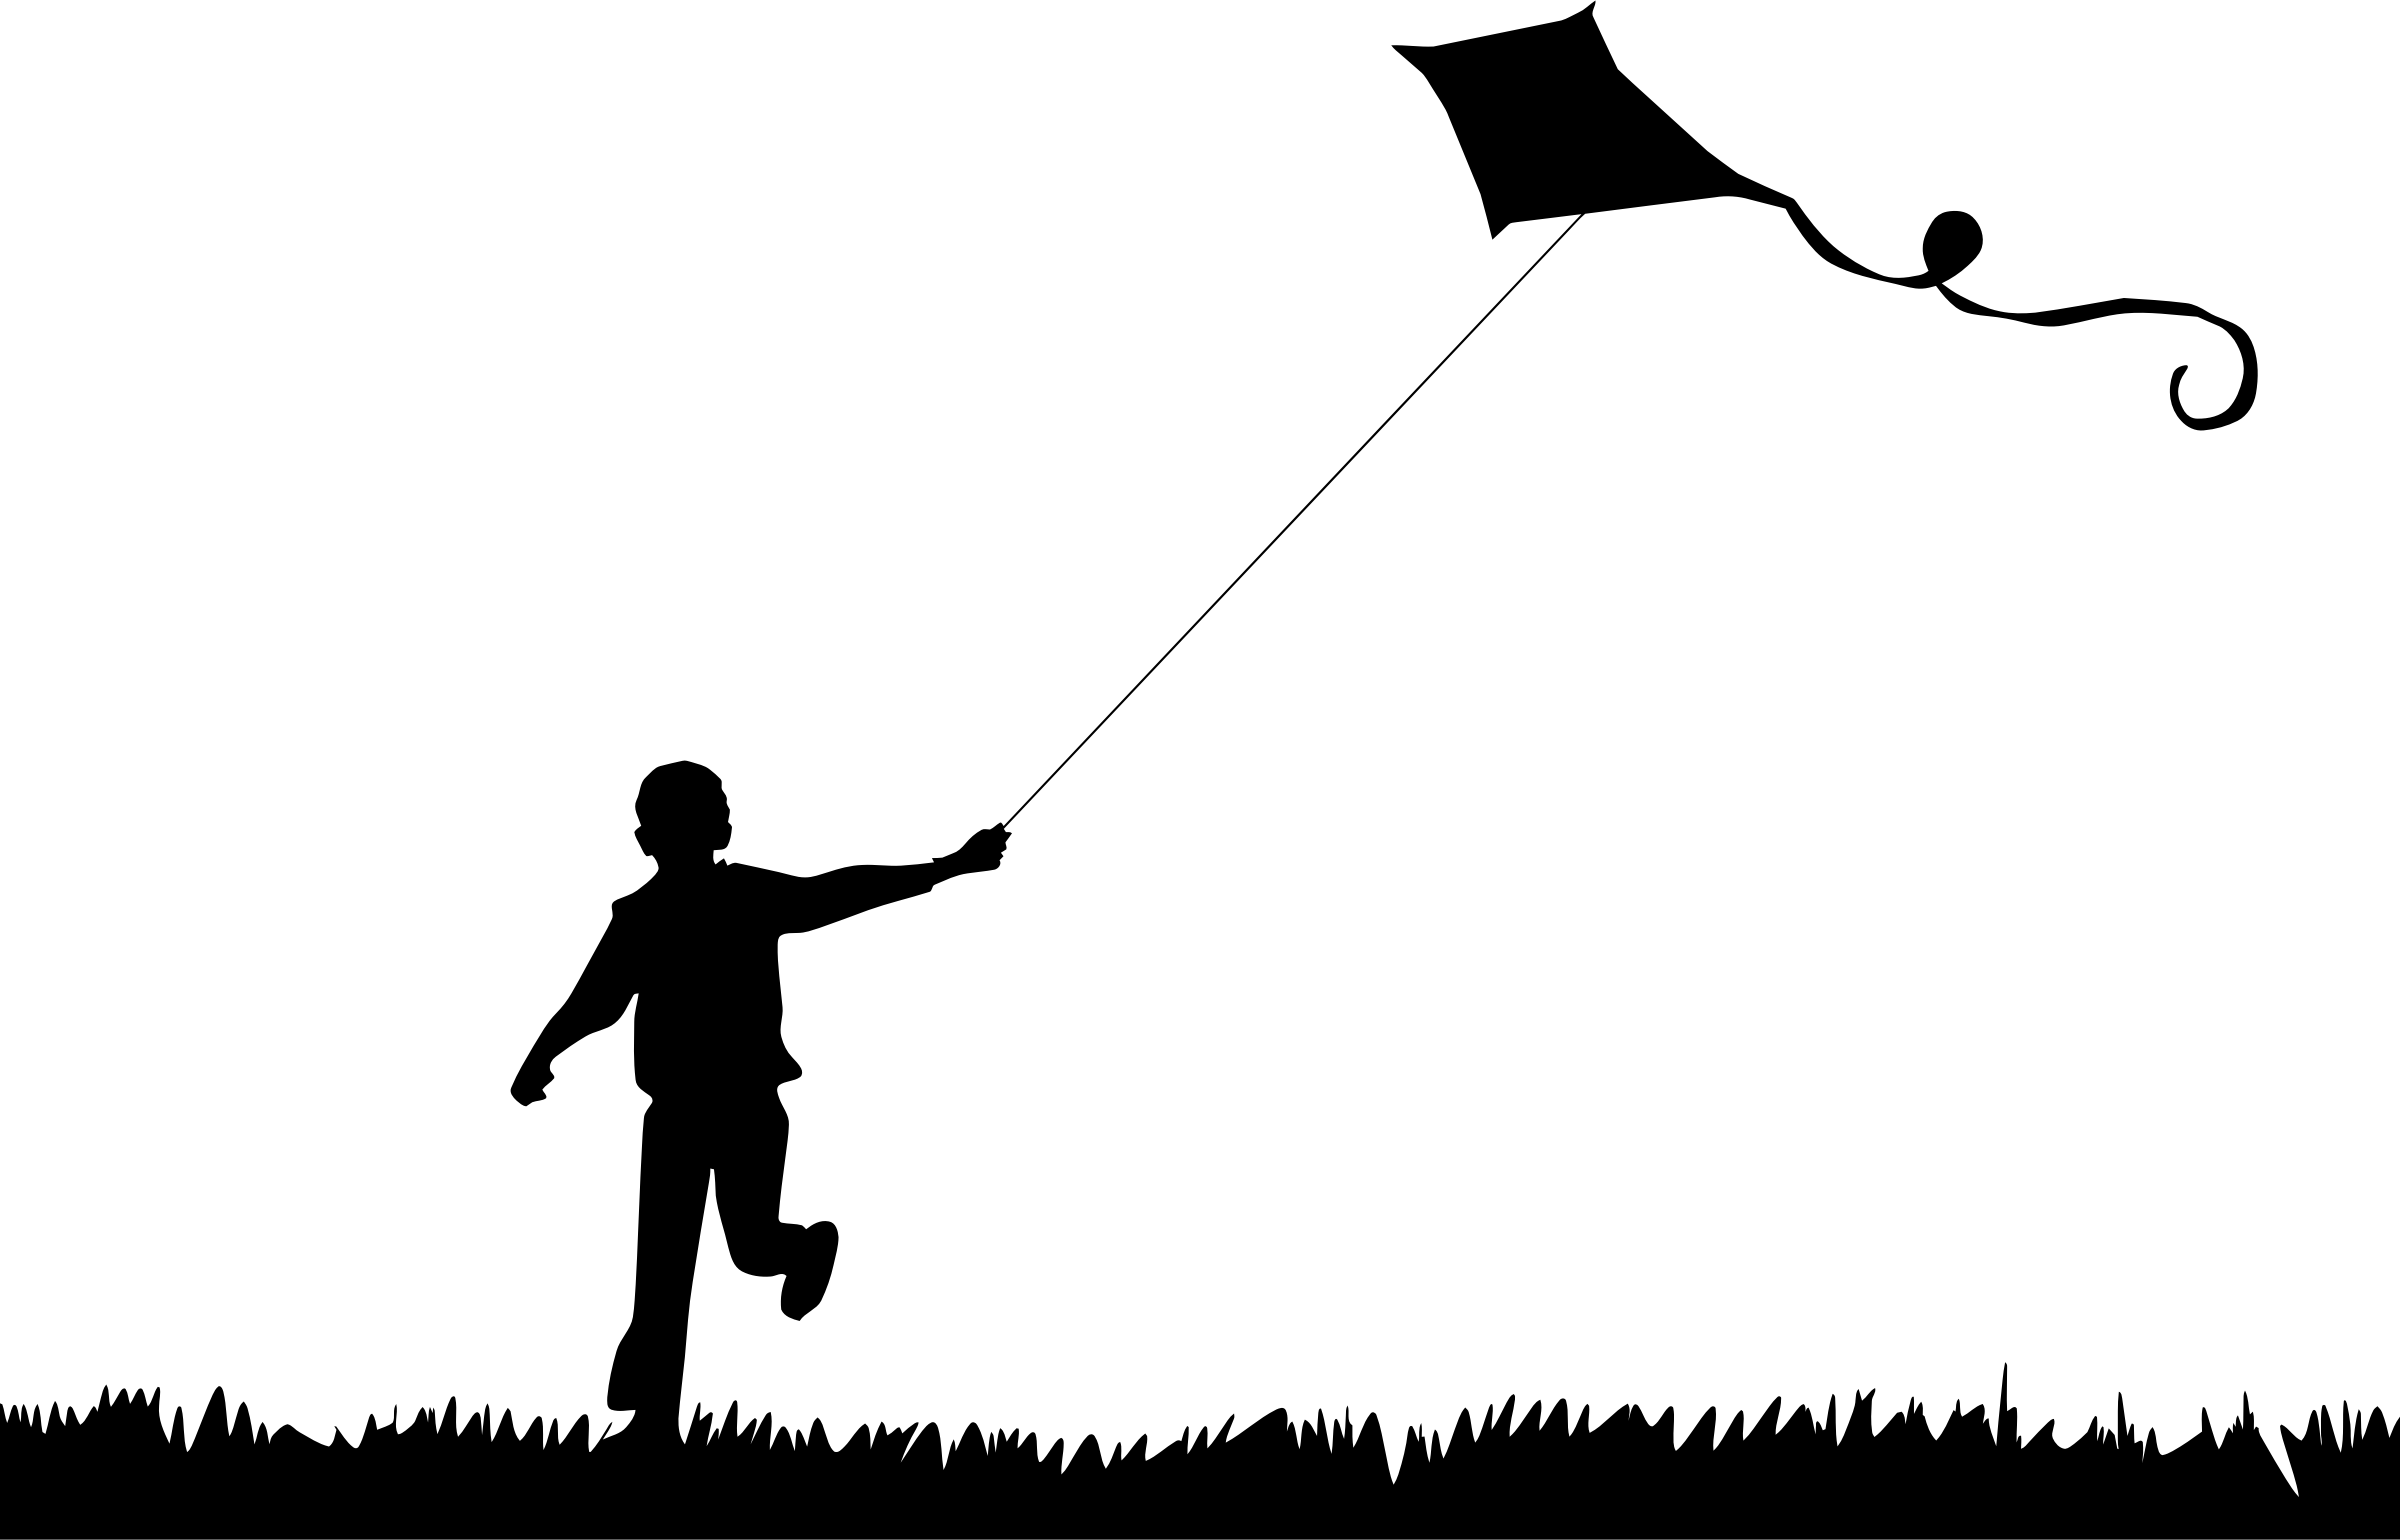 Kite Silhouette Clipart 20 Free Cliparts